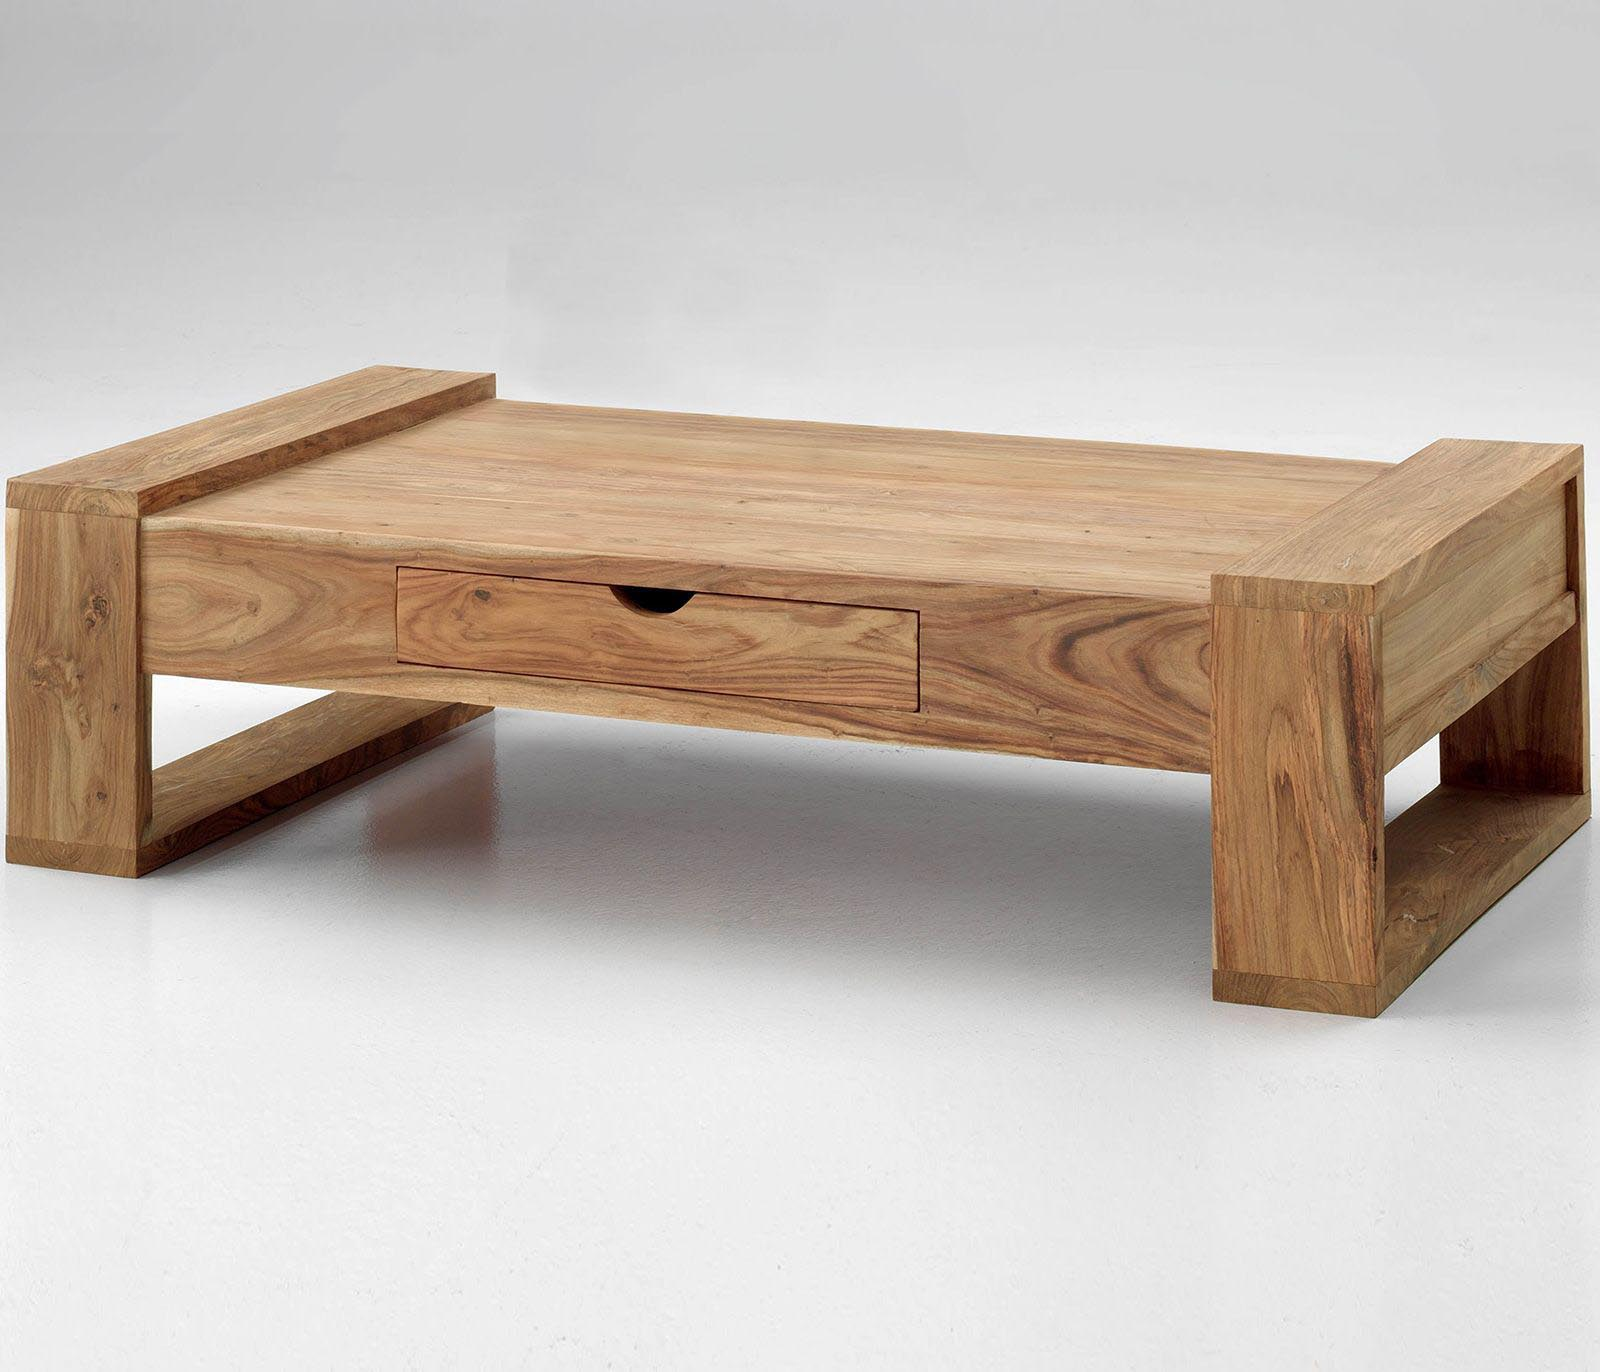 Low coffee table wood coffee table design ideas for Low coffee table wood